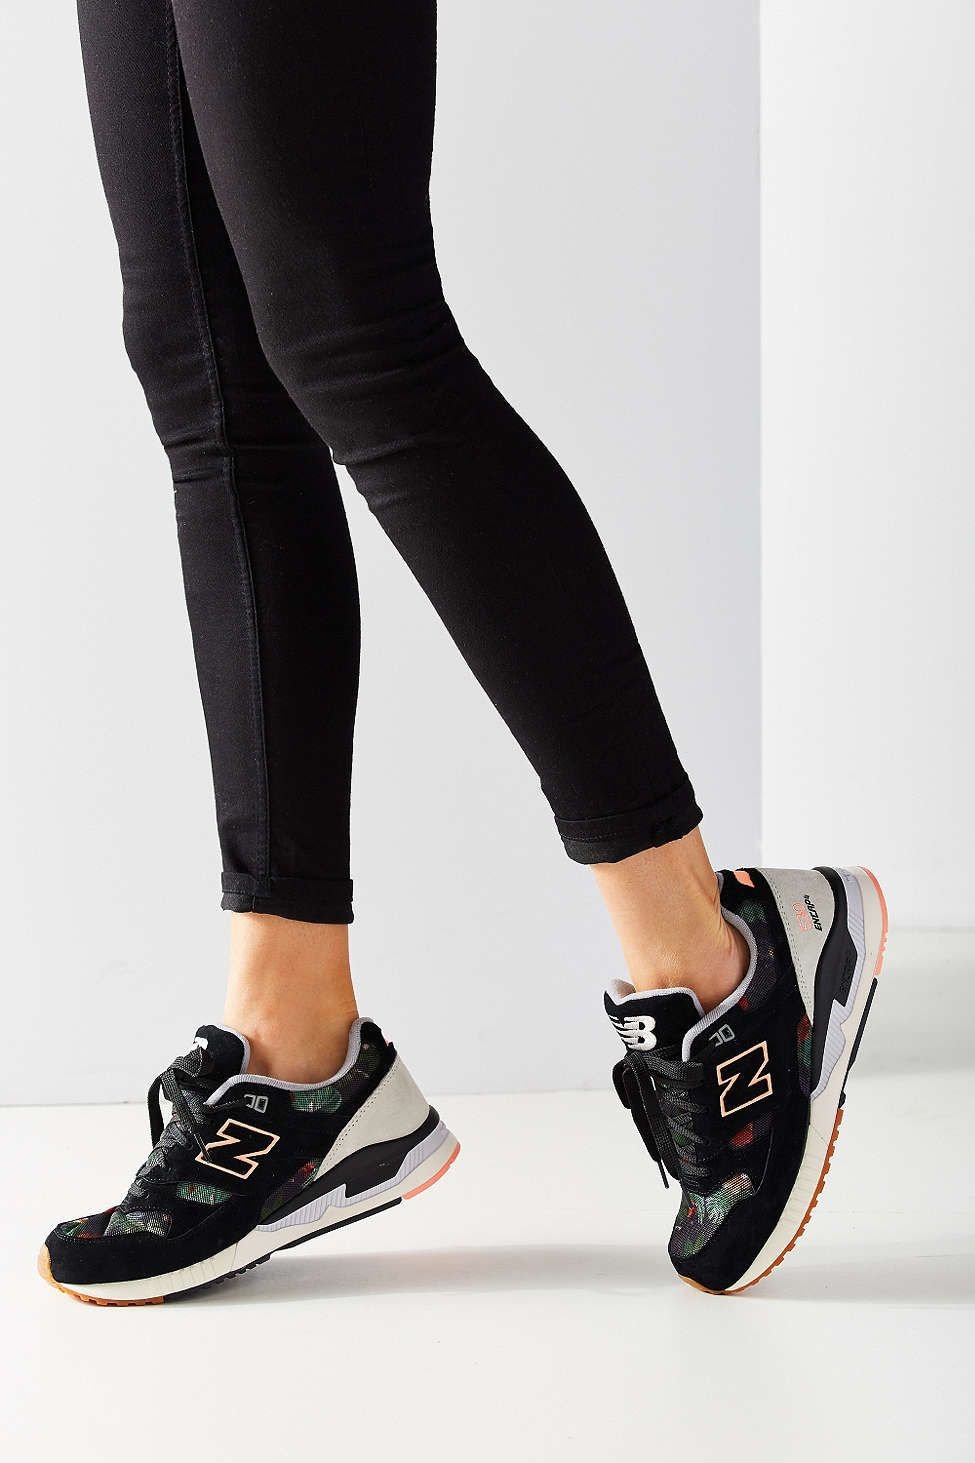 online store 37511 ddda0 New Balance 530 Floral Ink Running Sneaker | Kicks | New ...